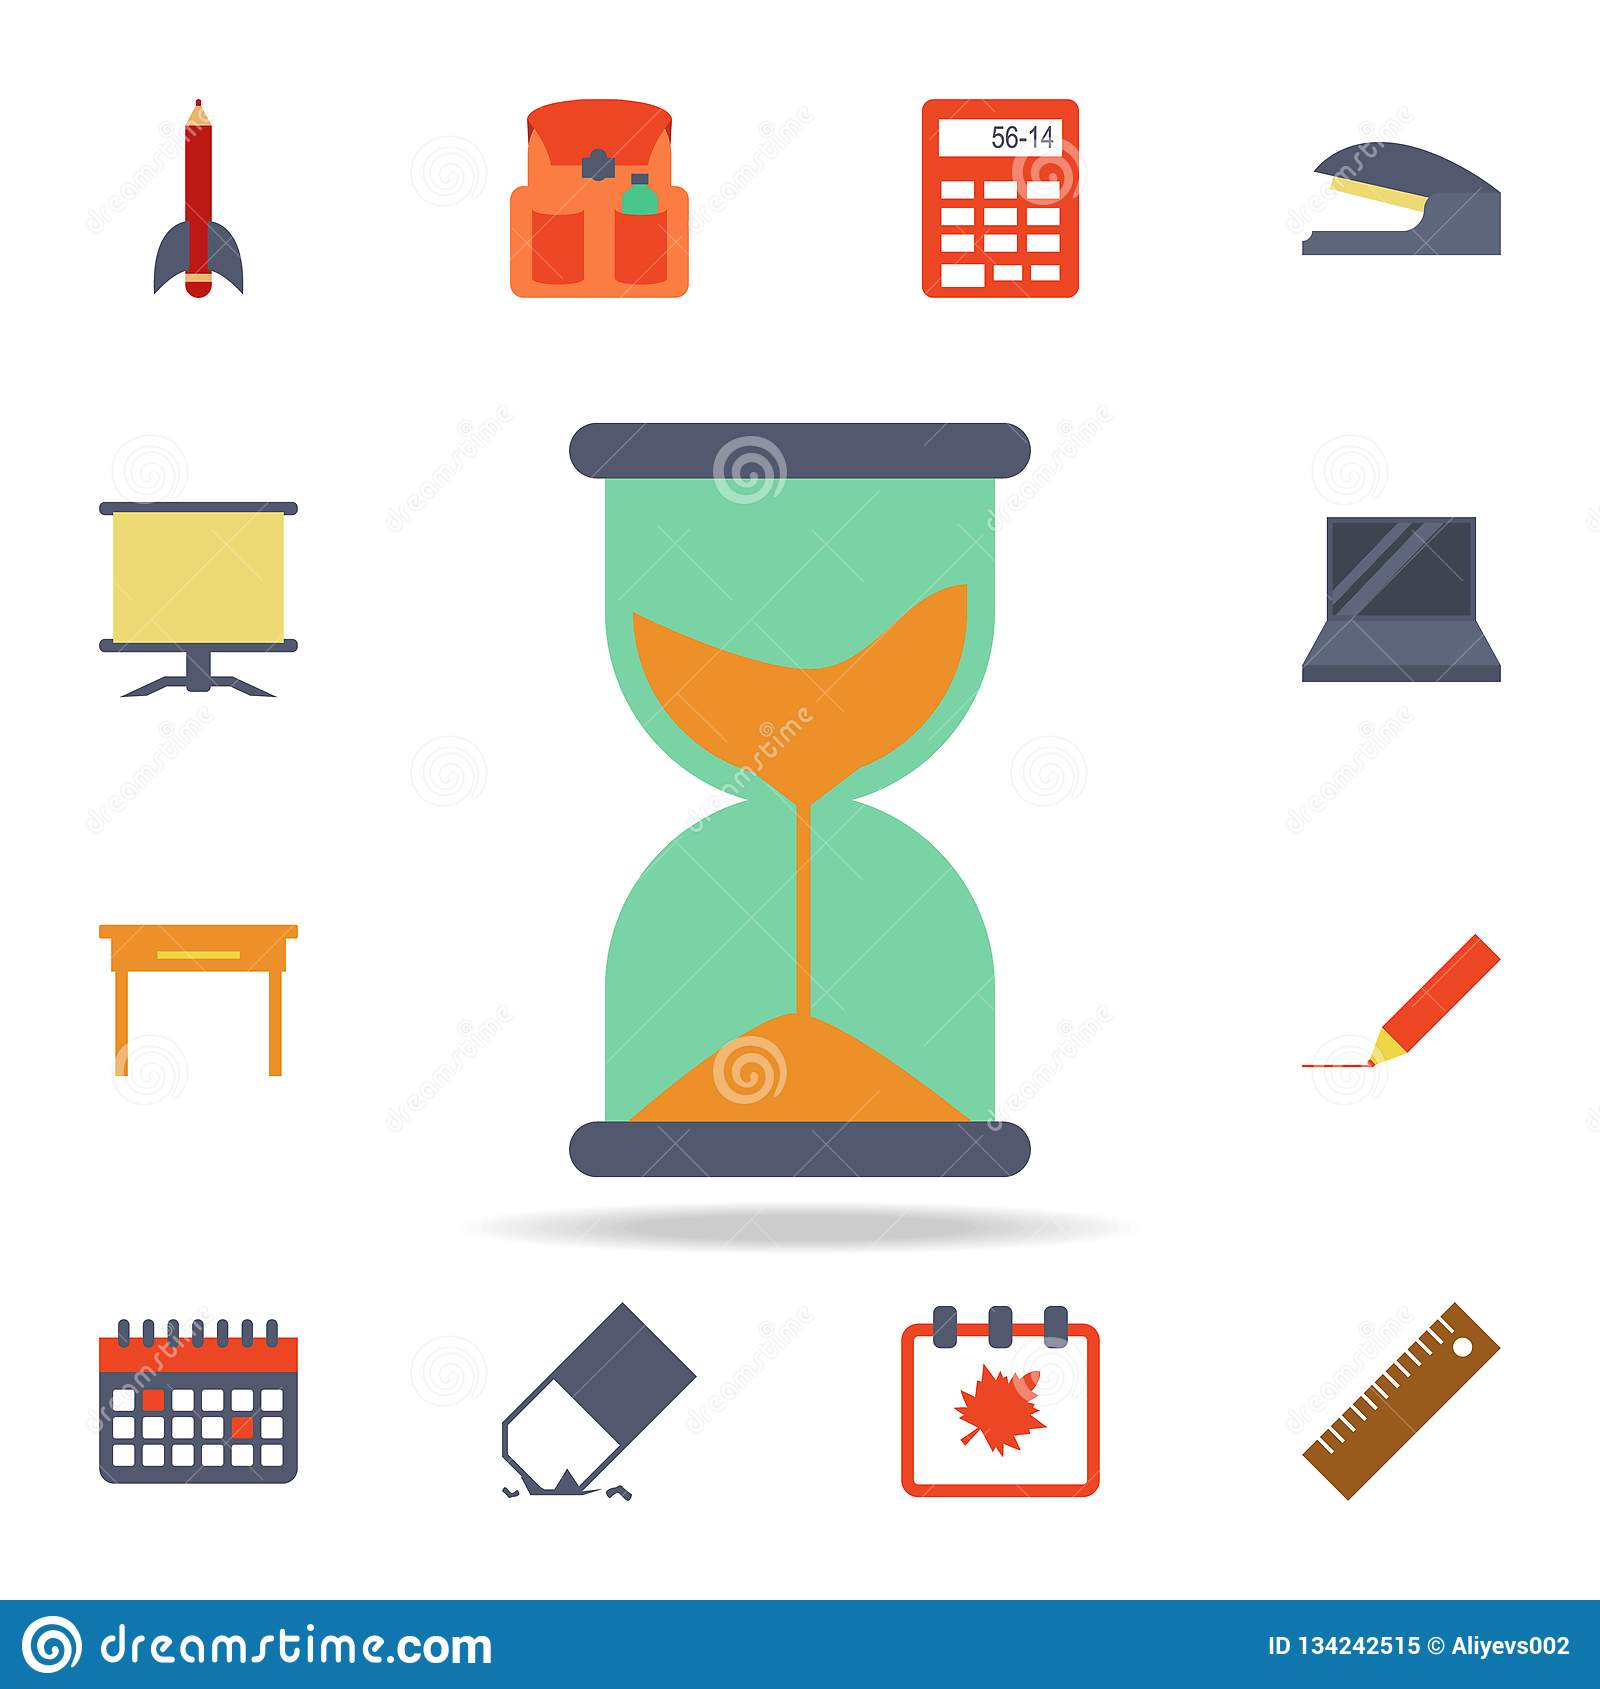 hourglass colored icon. Detailed set of colored education icons. Premium graphic design. One of the collection icons for websites